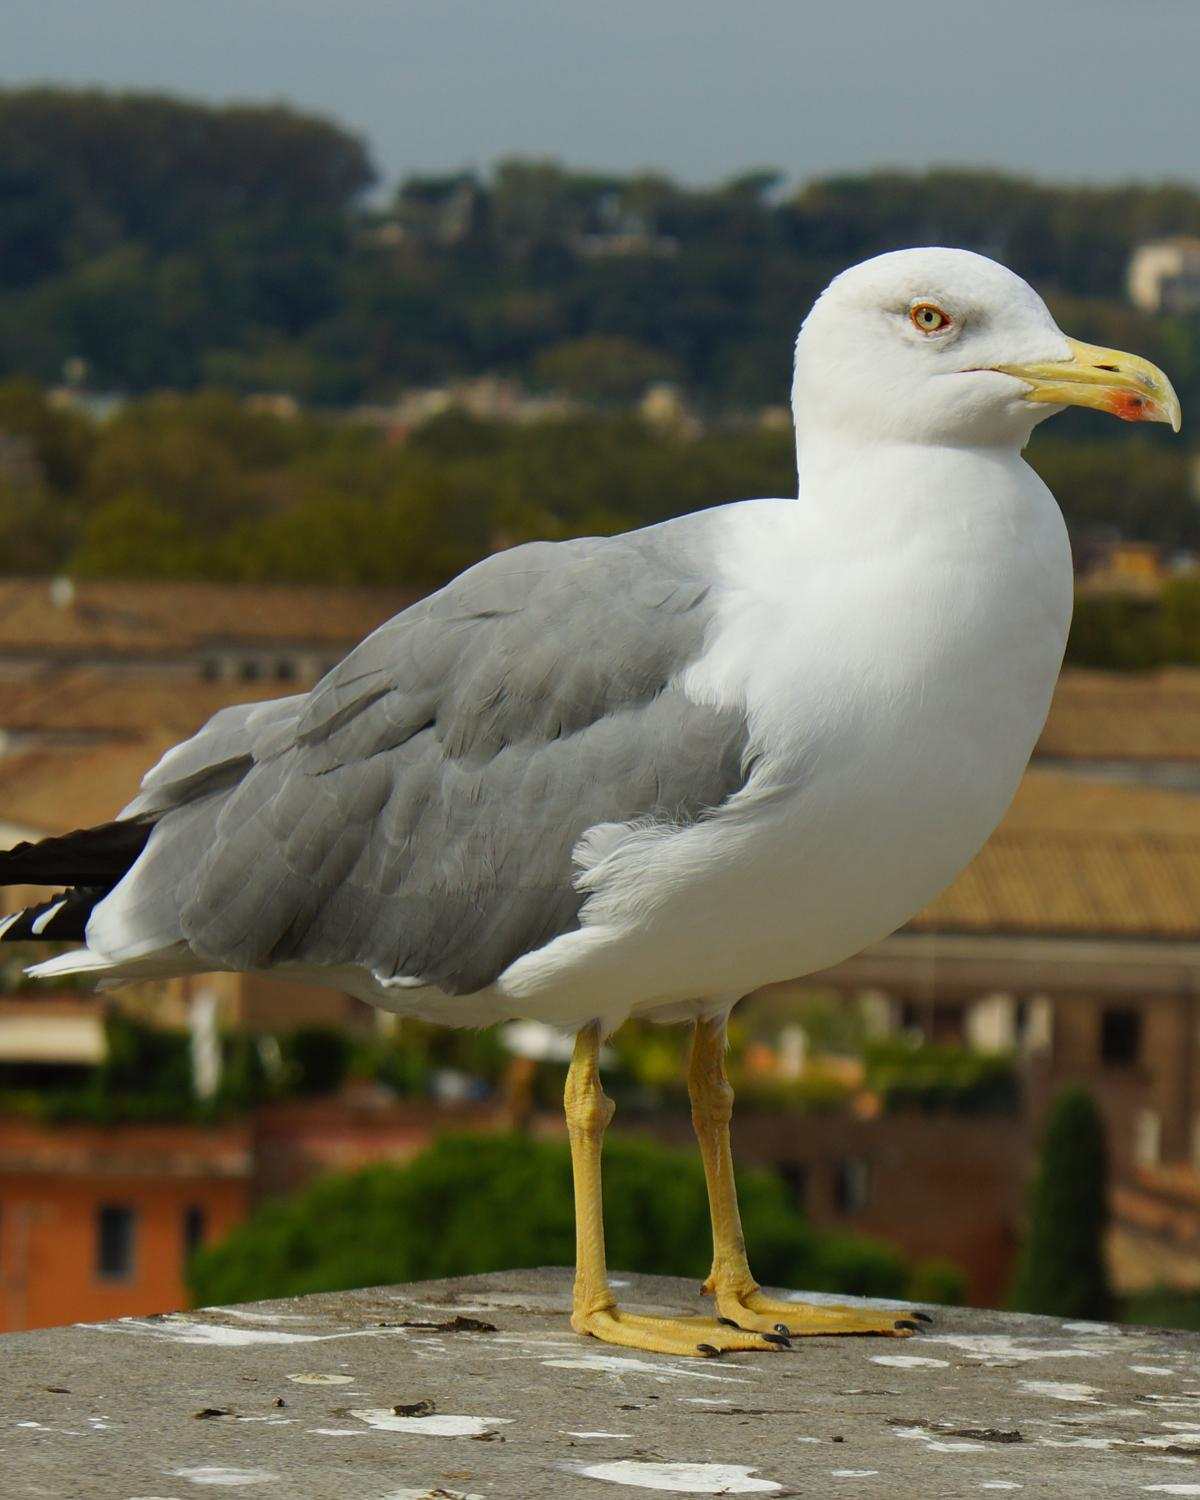 Yellow-legged Gull Photo by Robin Oxley